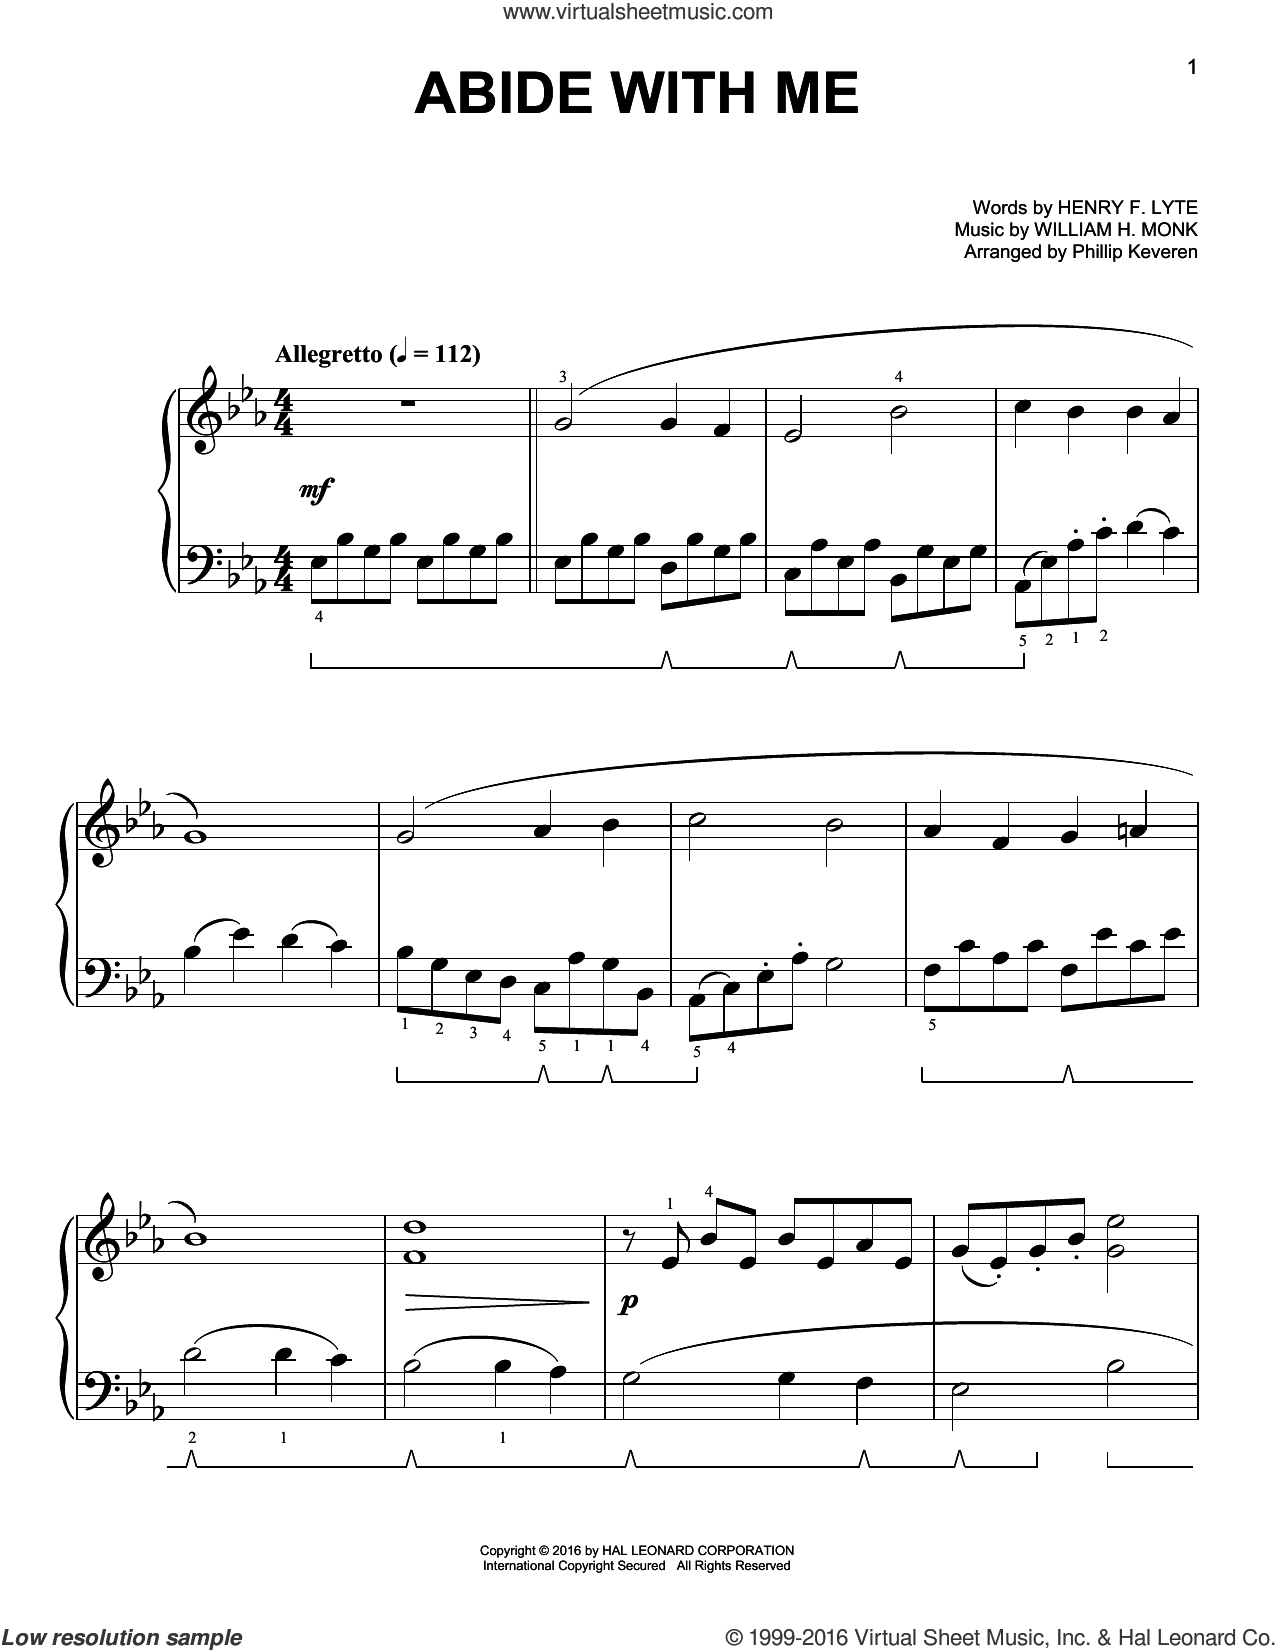 Abide With Me sheet music for piano solo by Henry F. Lyte, Phillip Keveren and William Henry Monk, easy skill level